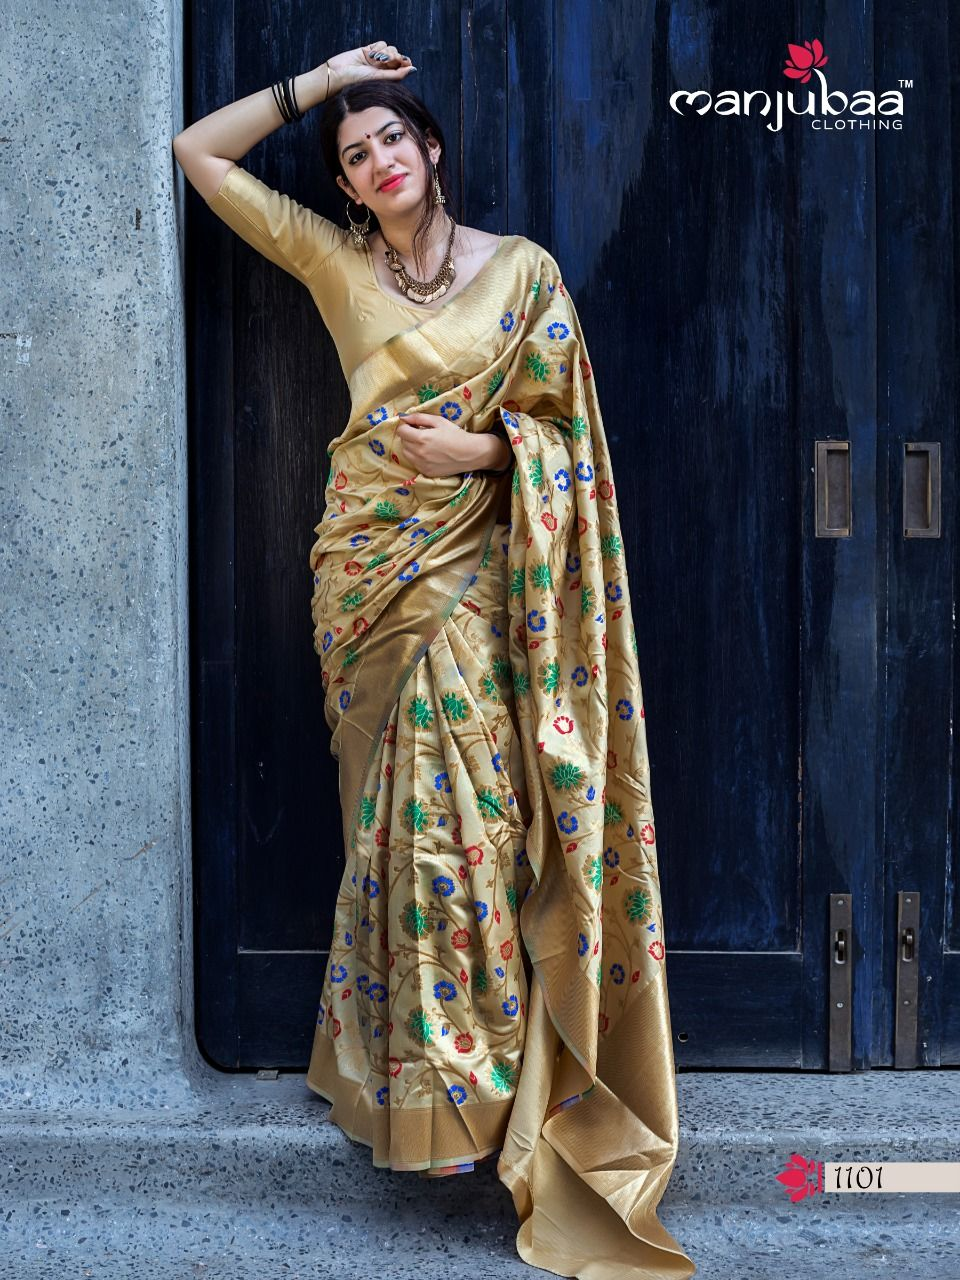 e6c2b3c02c Book order or inquiry now call or whatsapp : ( +91 ) 8866444471 manjubaa  clothing lotus vol 11 soft silk sarees online wholesale #IndianClothStore  ...